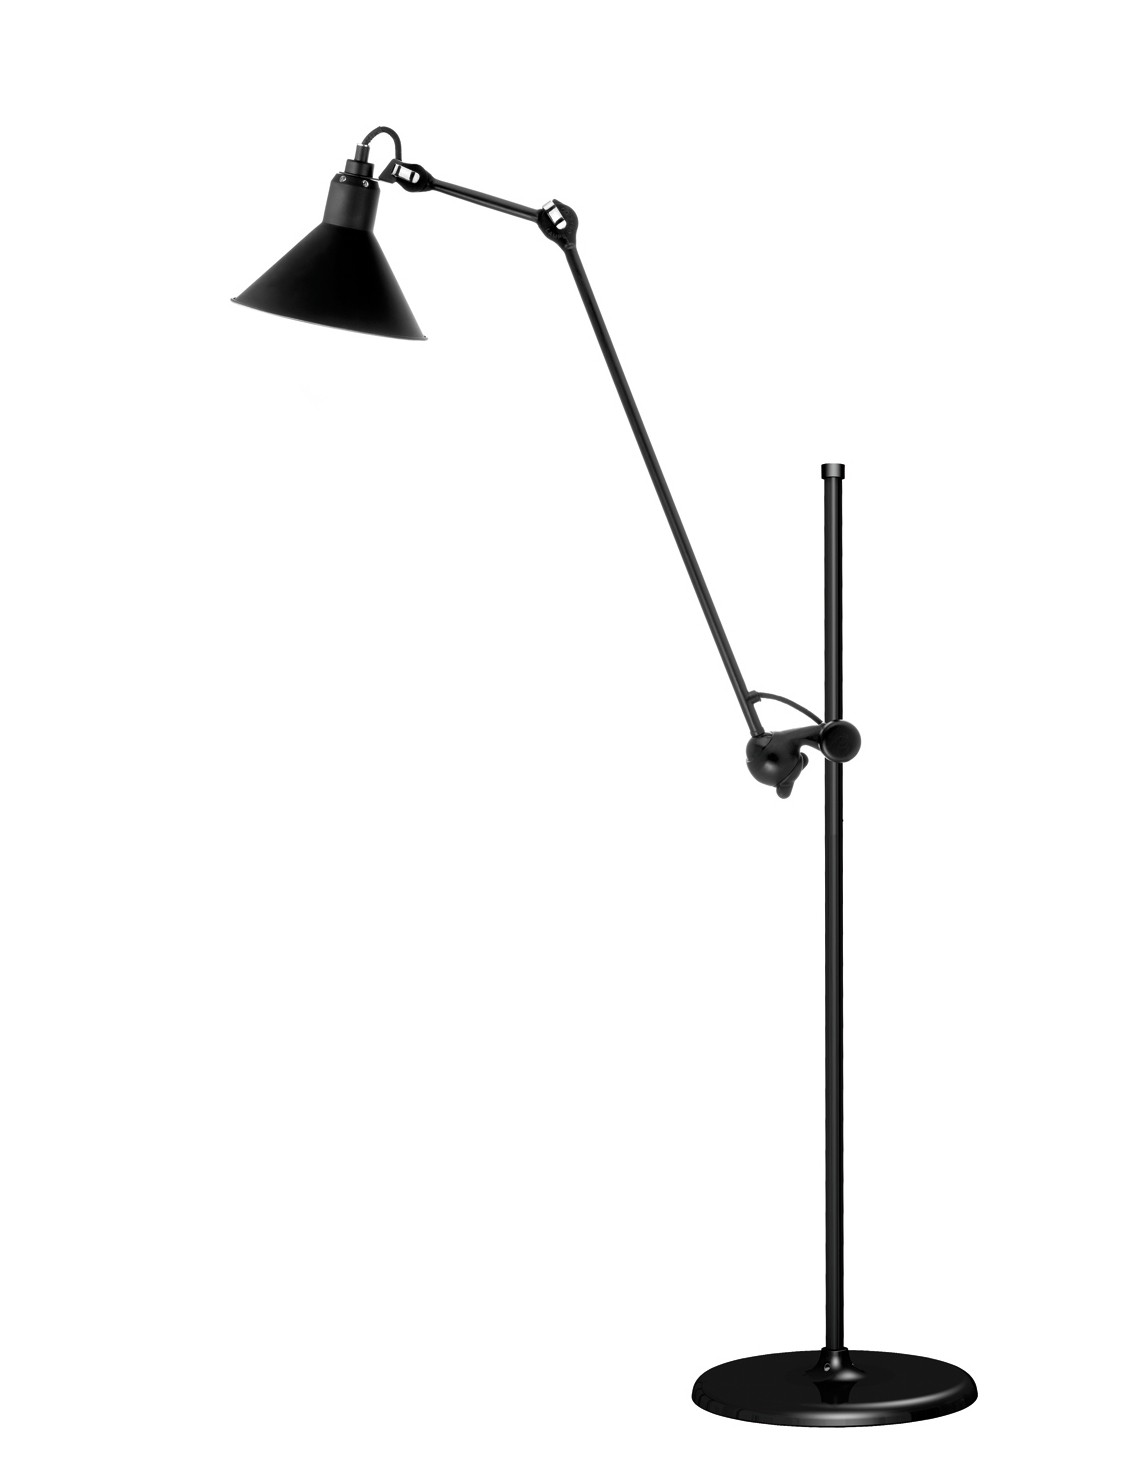 luminaires lampes gras lampadaire articul gras n 215 noir. Black Bedroom Furniture Sets. Home Design Ideas